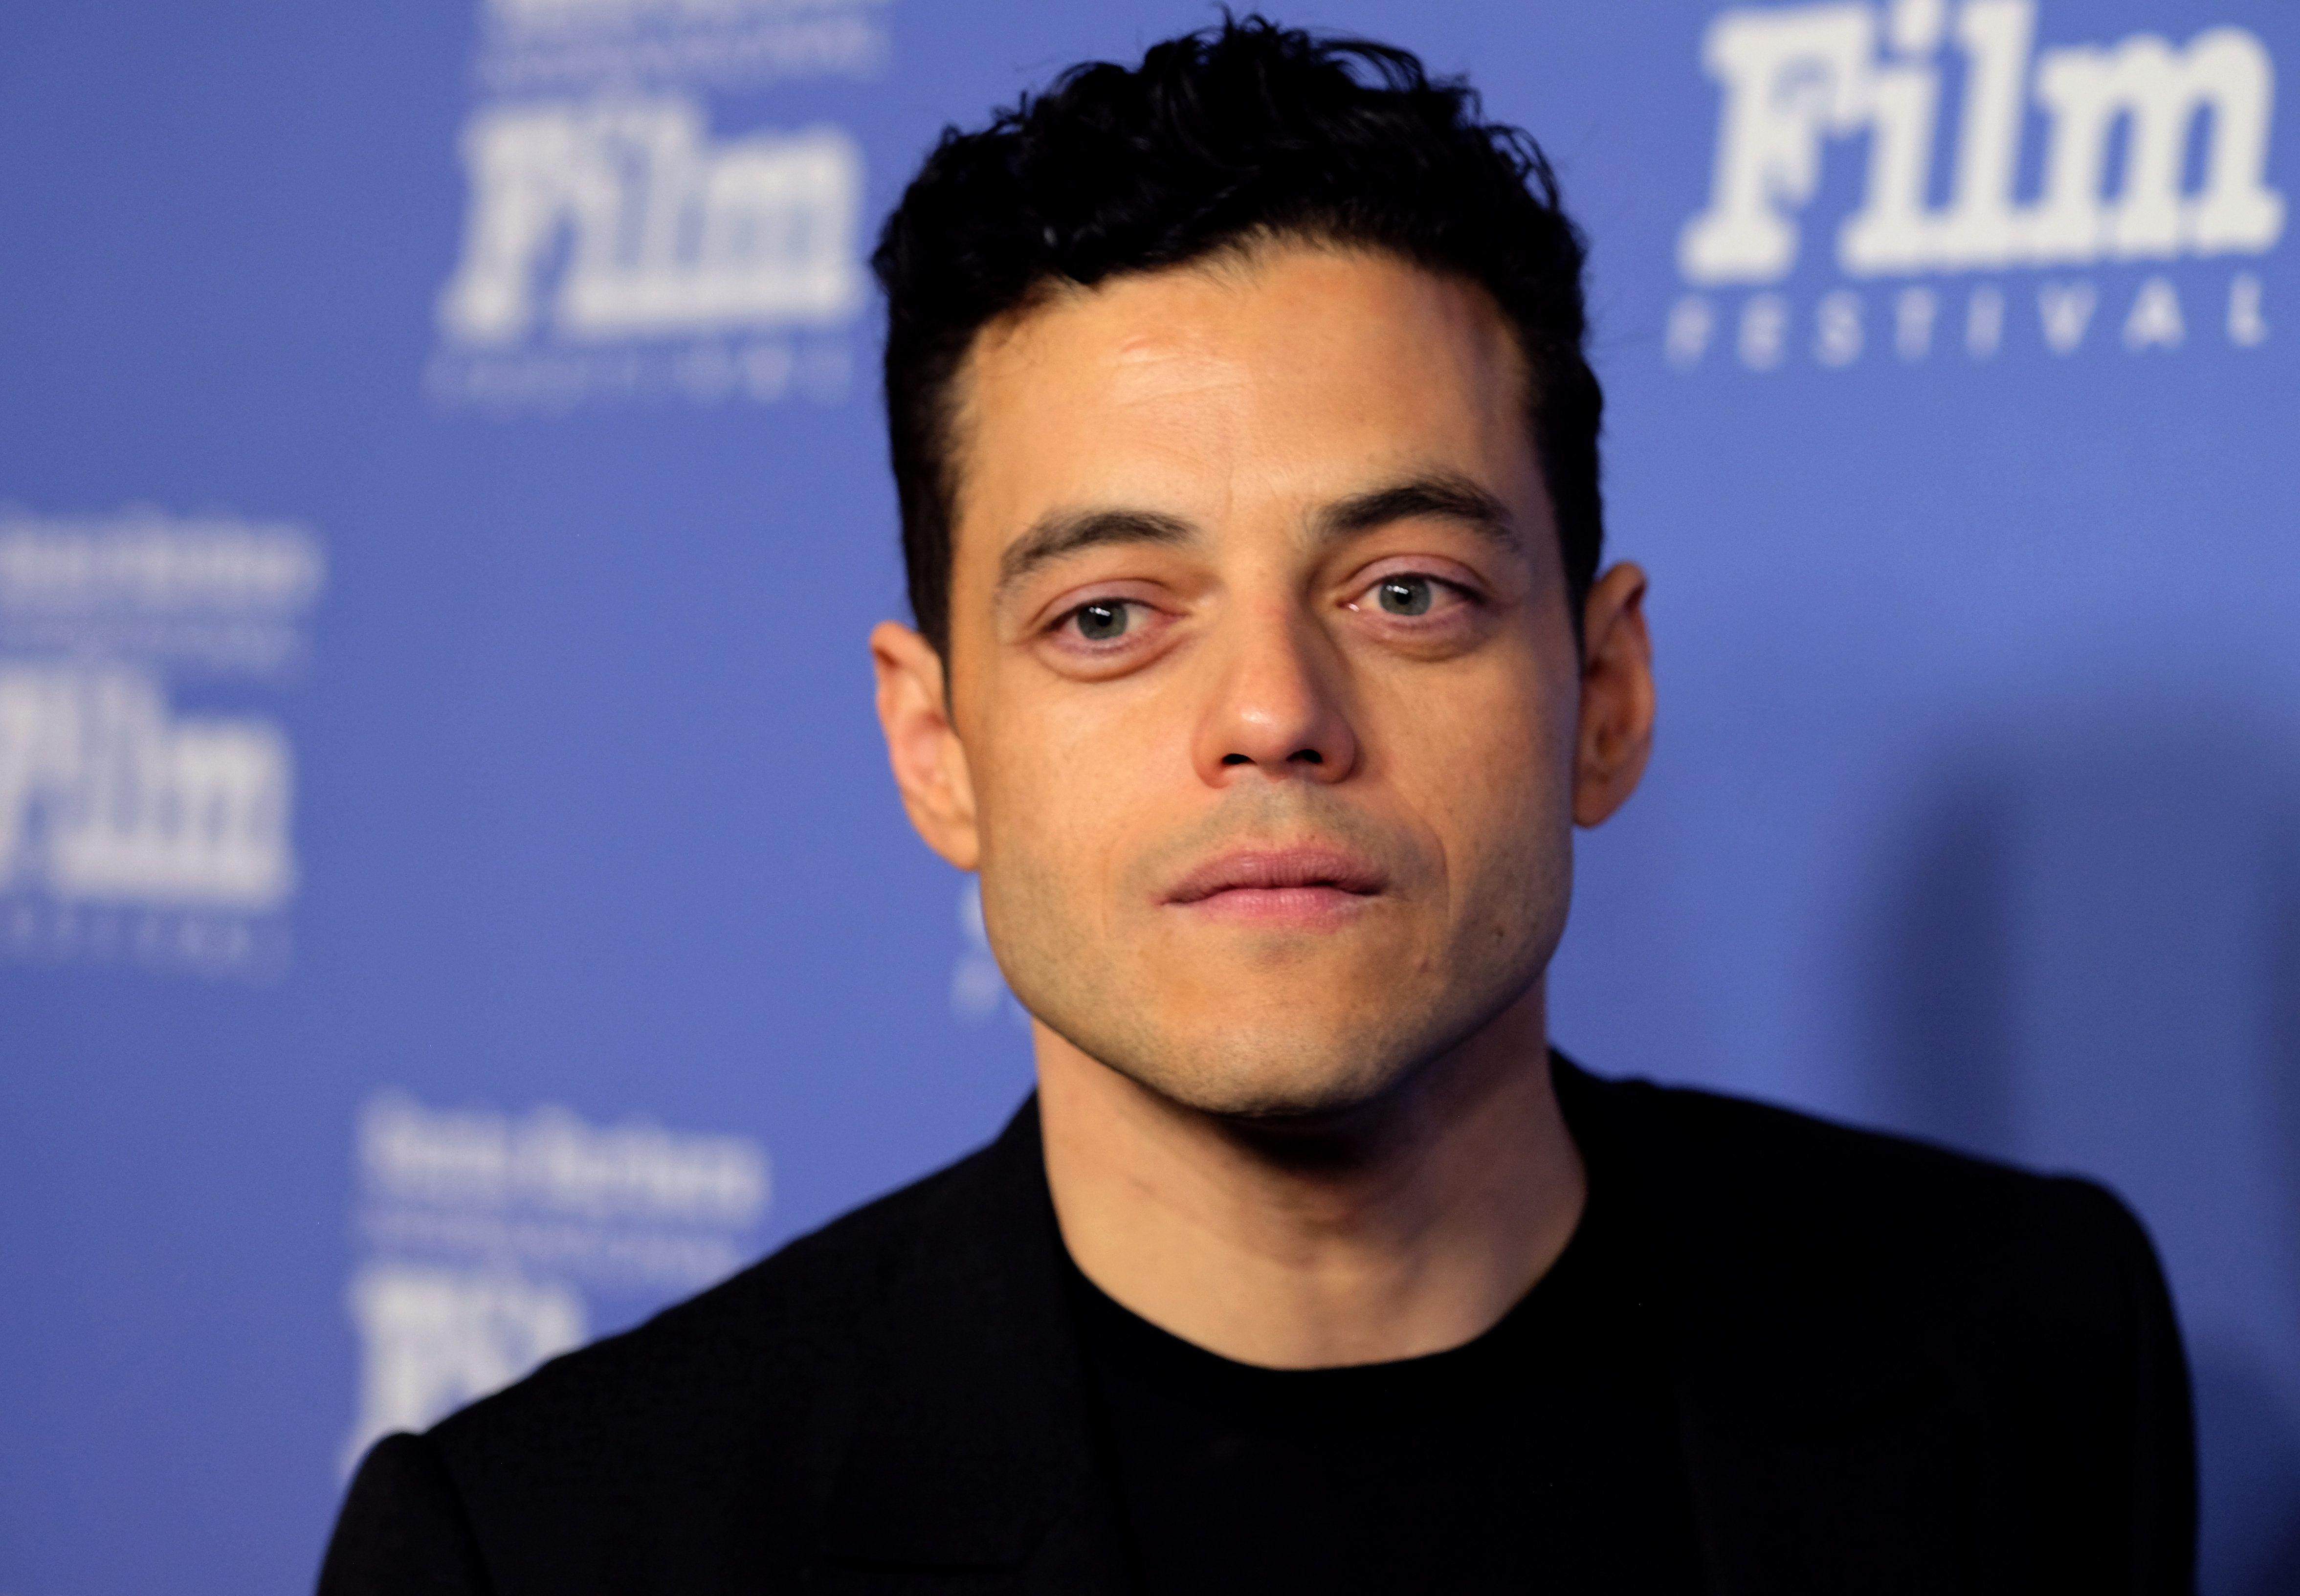 SANTA BARBARA, CA - FEBRUARY 01:  Rami Malek attends the Outstanding Performer Award Honoring Rami Malek during 34th Santa Barbara International Film Festival at Arlington Theatre on February 1, 2019 in Santa Barbara, California.  (Photo by Matthew Simmons/Getty Images for SBIFF)